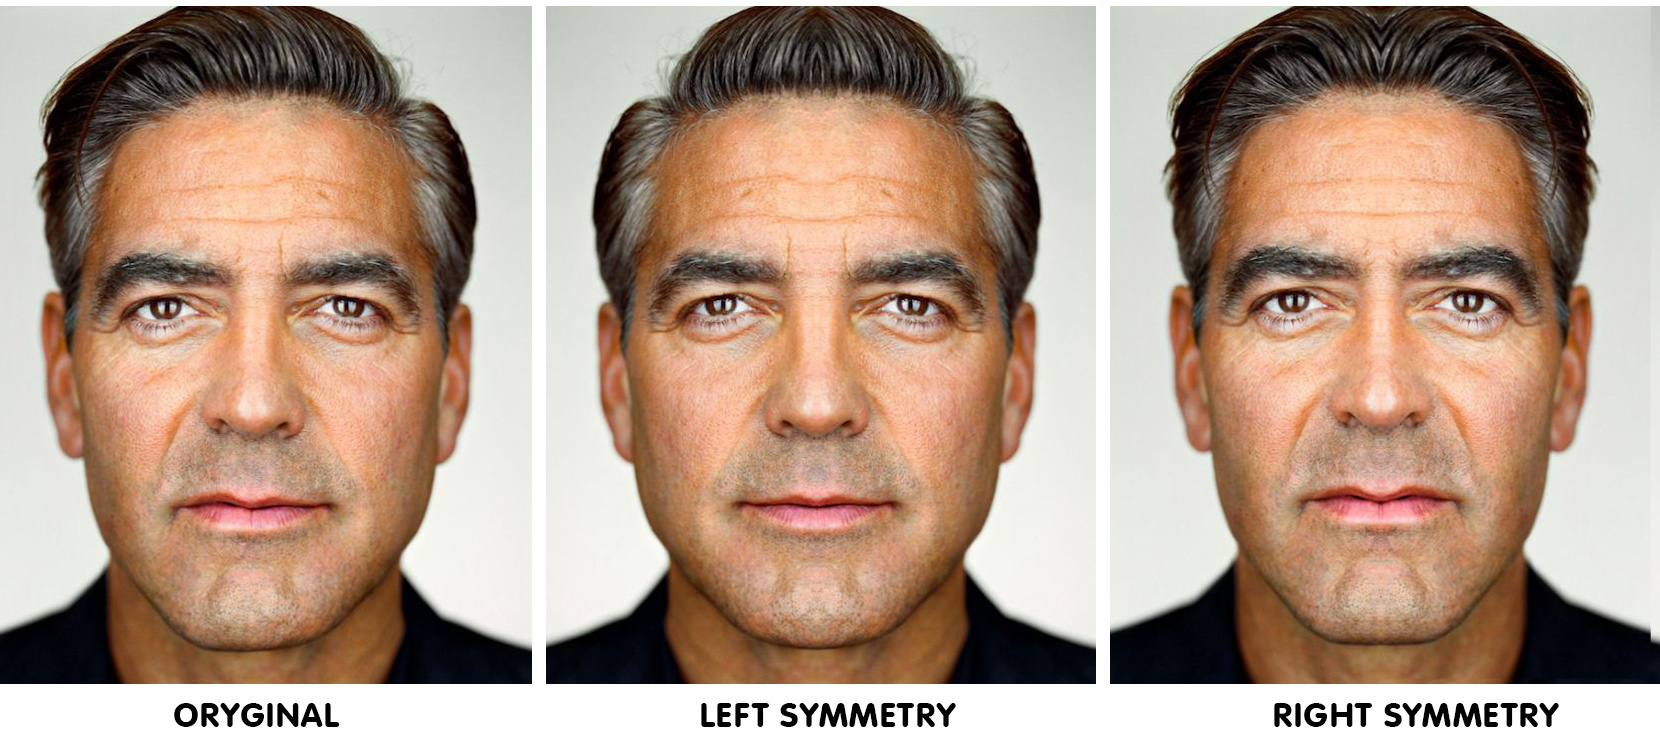 Face Symmetry of Celebrities - youbeauty.com